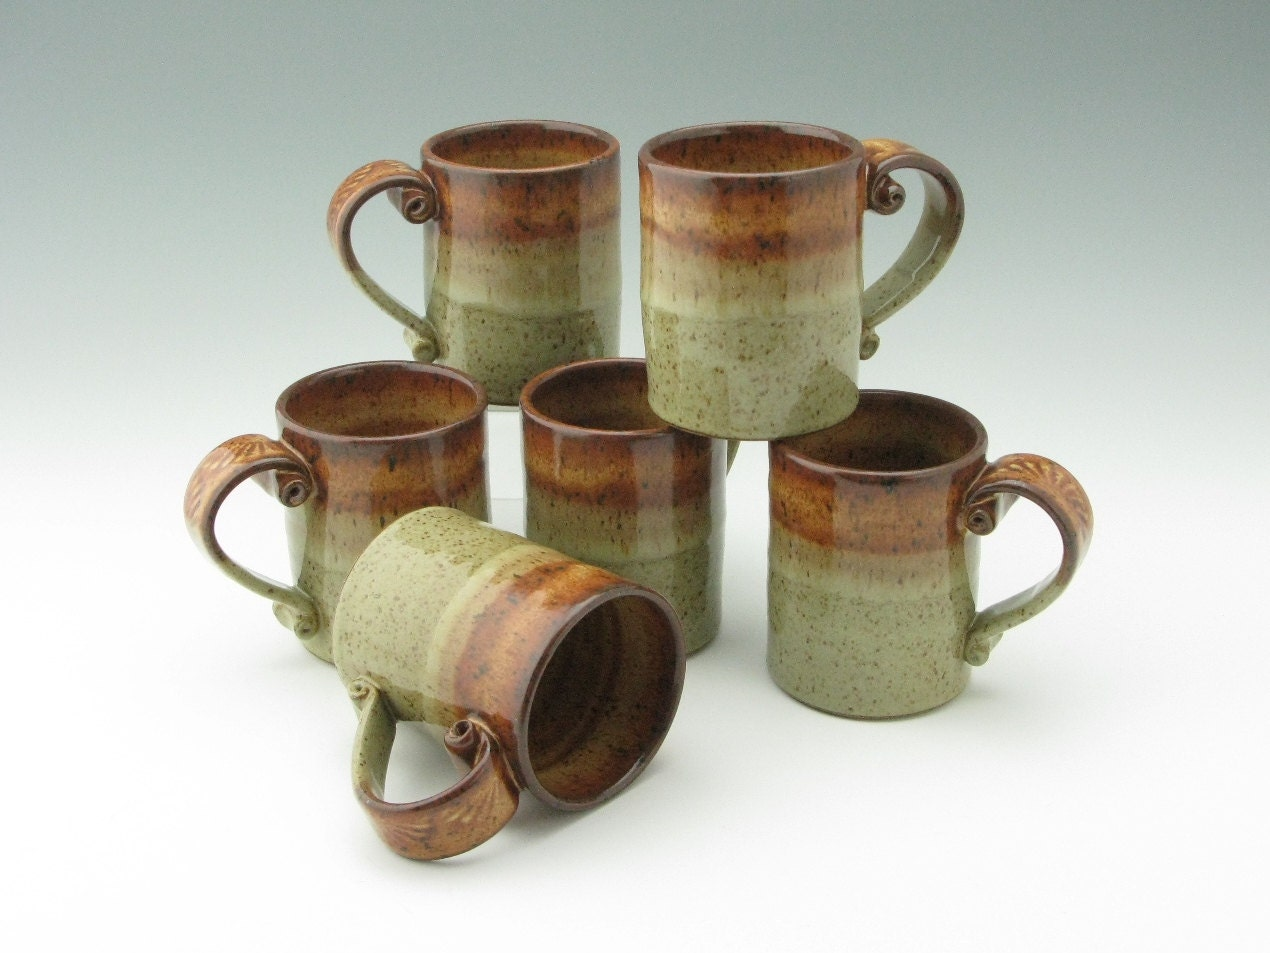 Handmade pottery coffee mug ceramic 12 oz tea mug honey and Unique coffee cups mugs